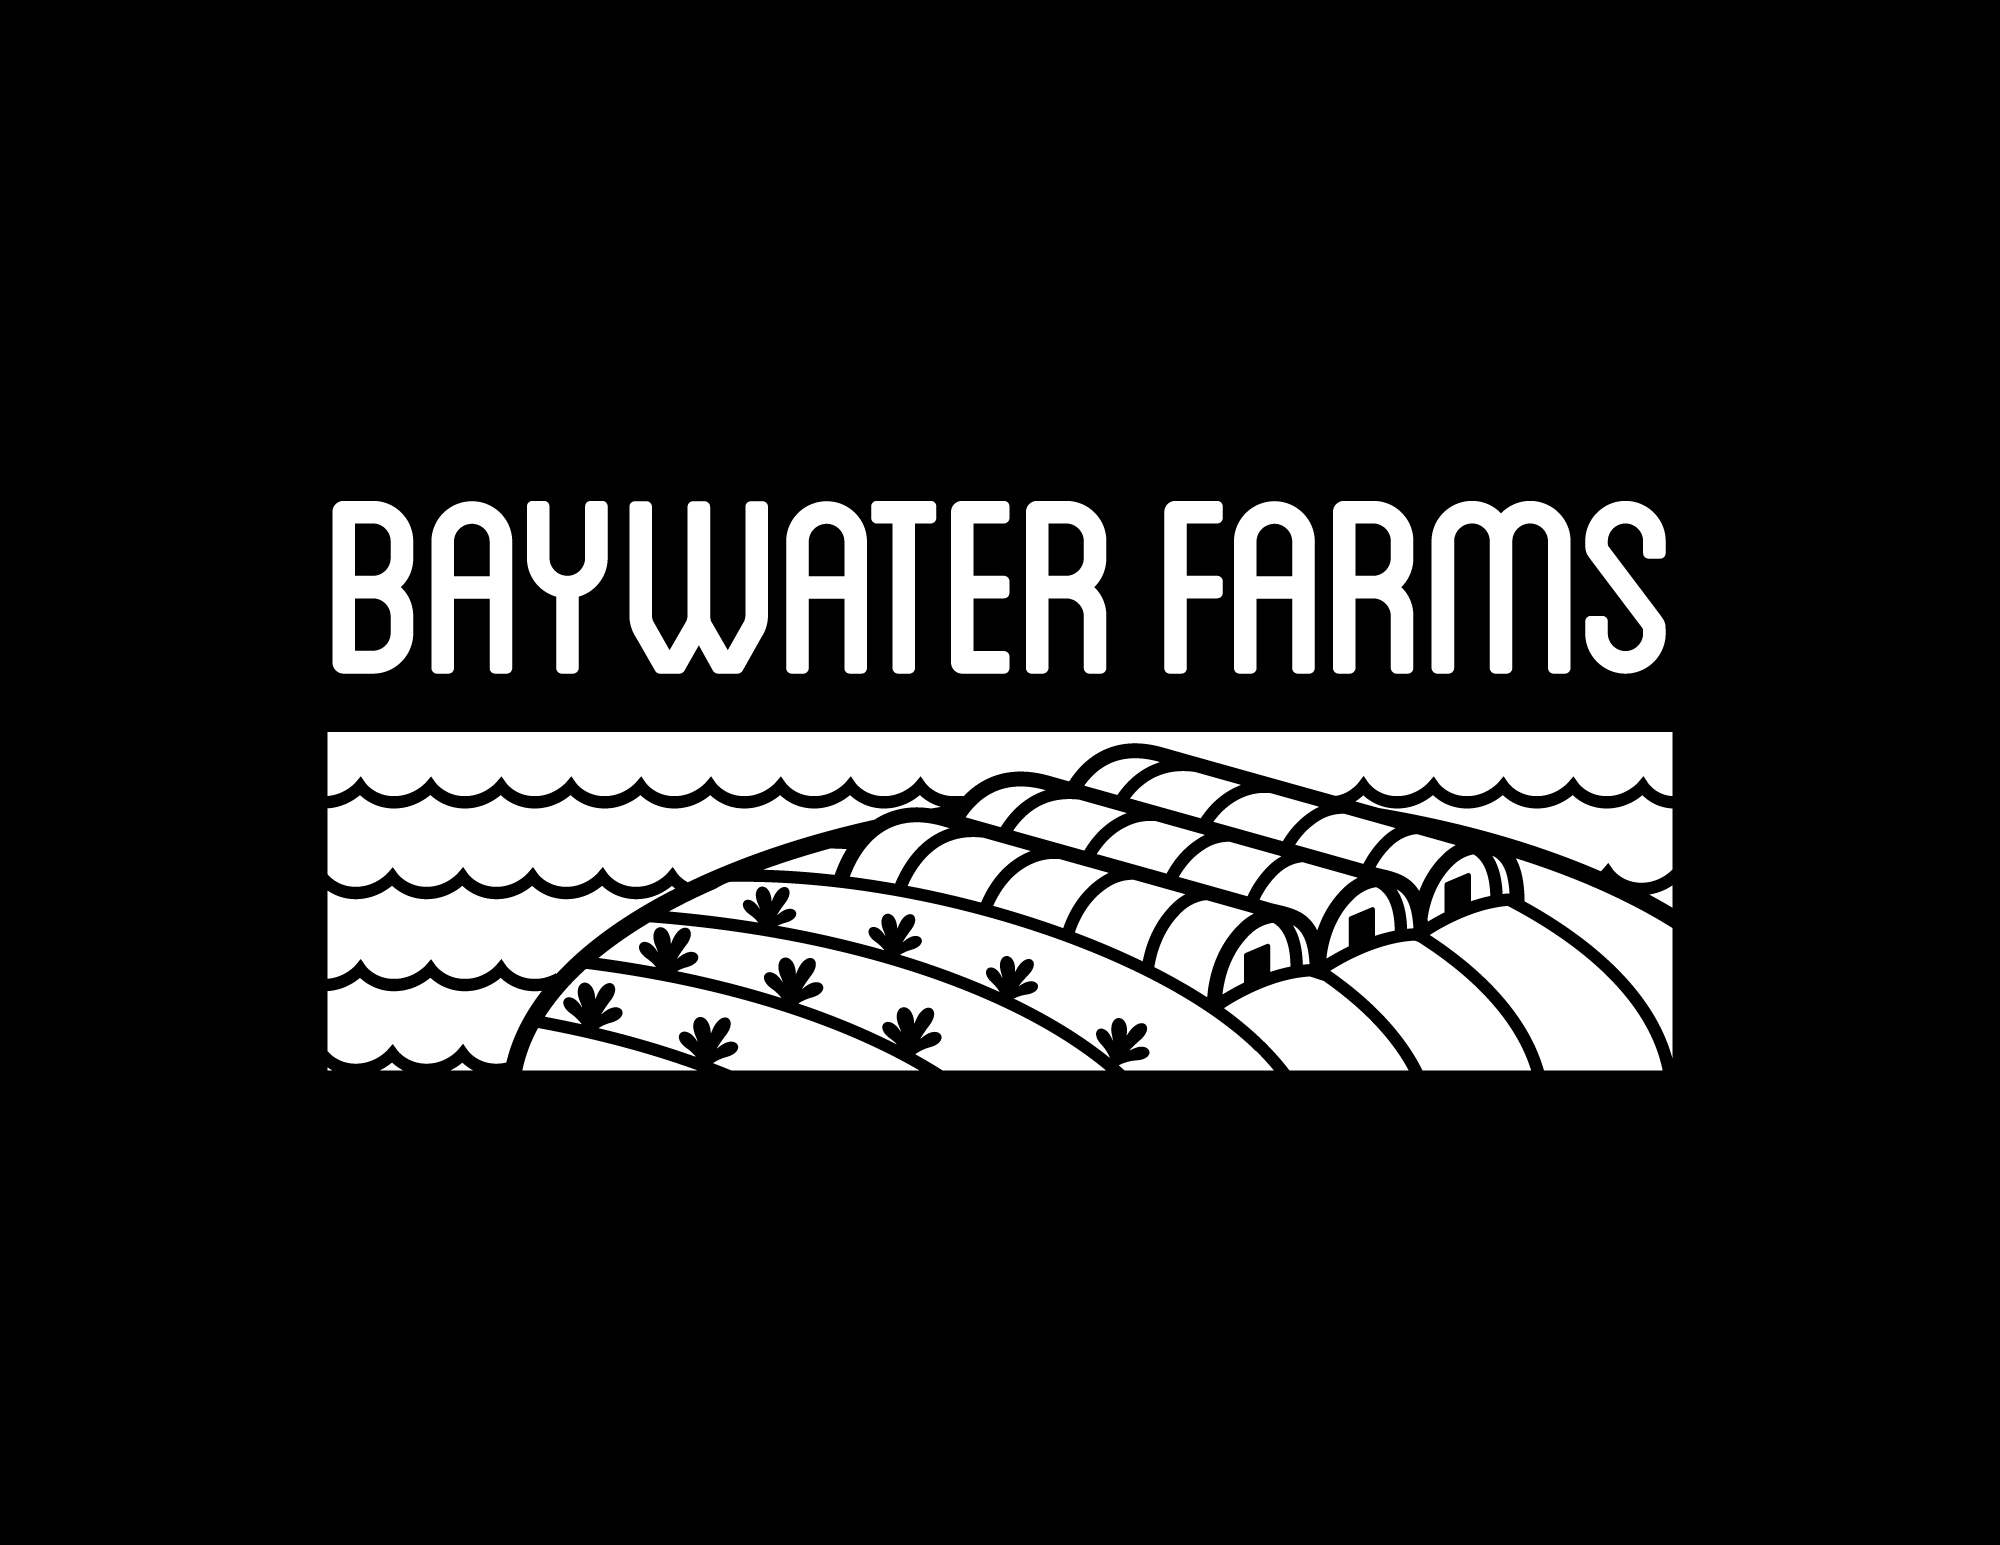 BaywaterFarms_Logo_V1_B&W-Rectangle-BlackBKG.png